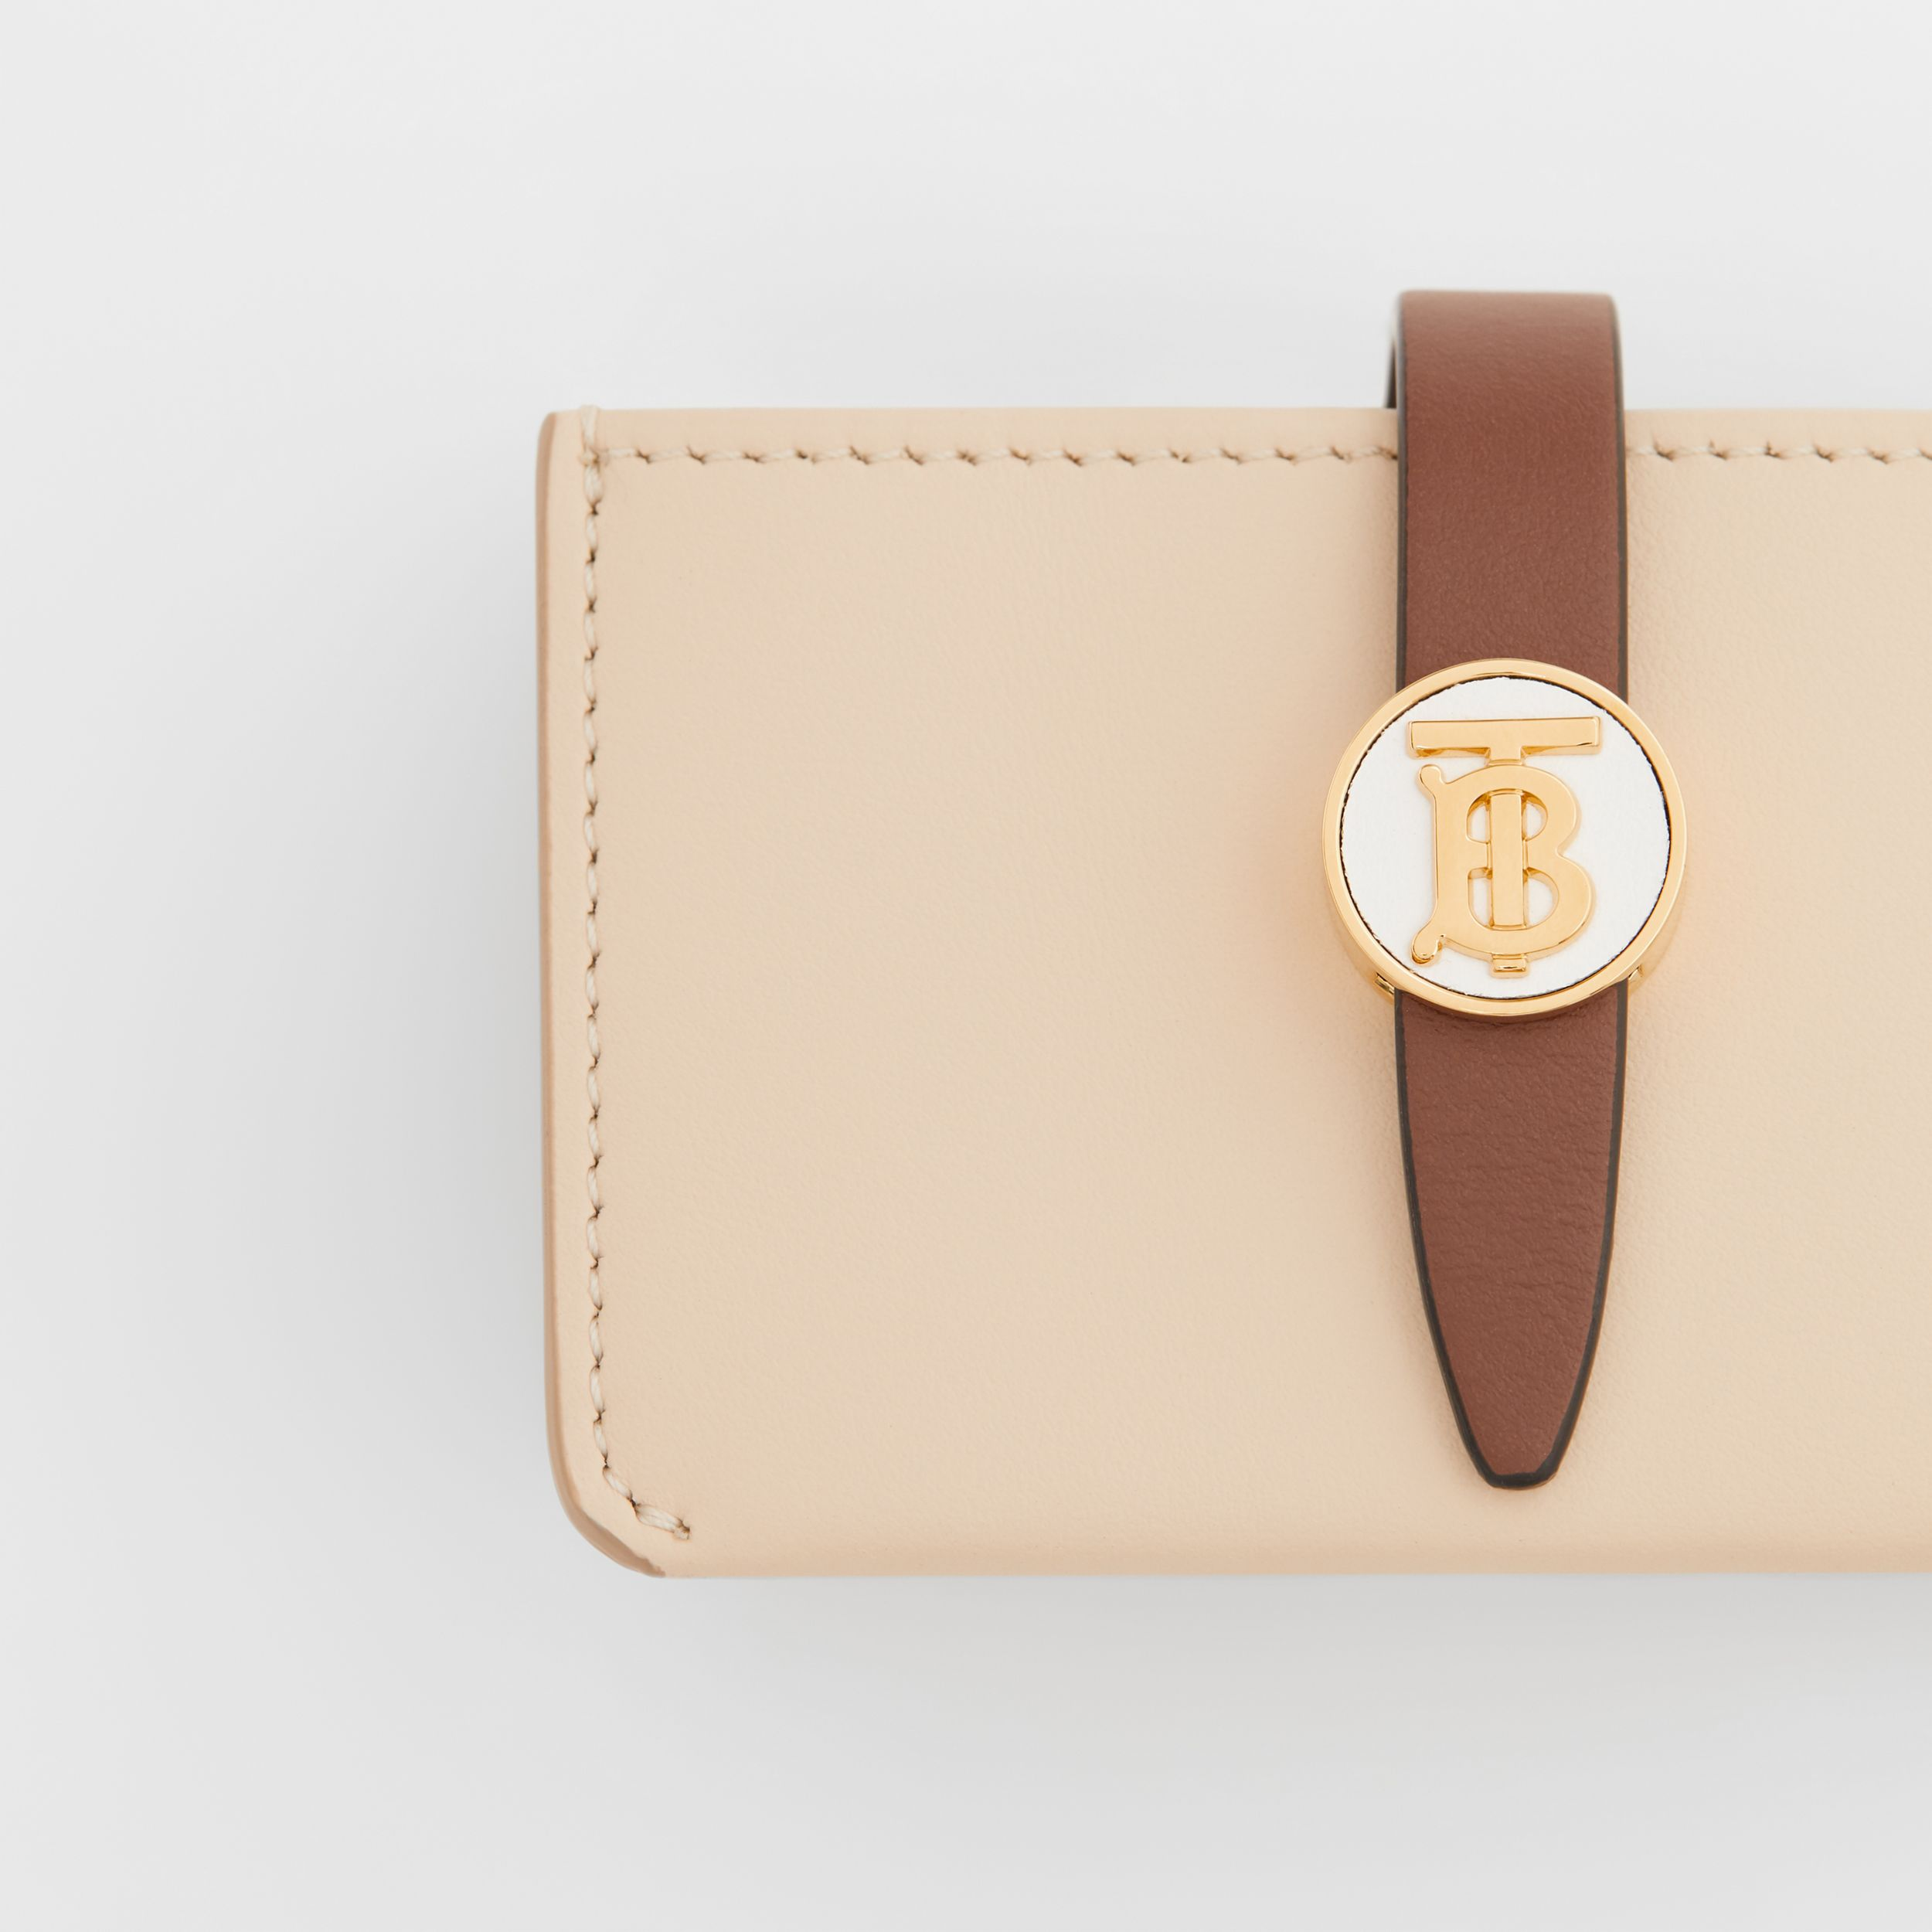 Monogram Motif Colour Block Leather Card Case in Tan/pale Copper/peony Pink - Women | Burberry - 2